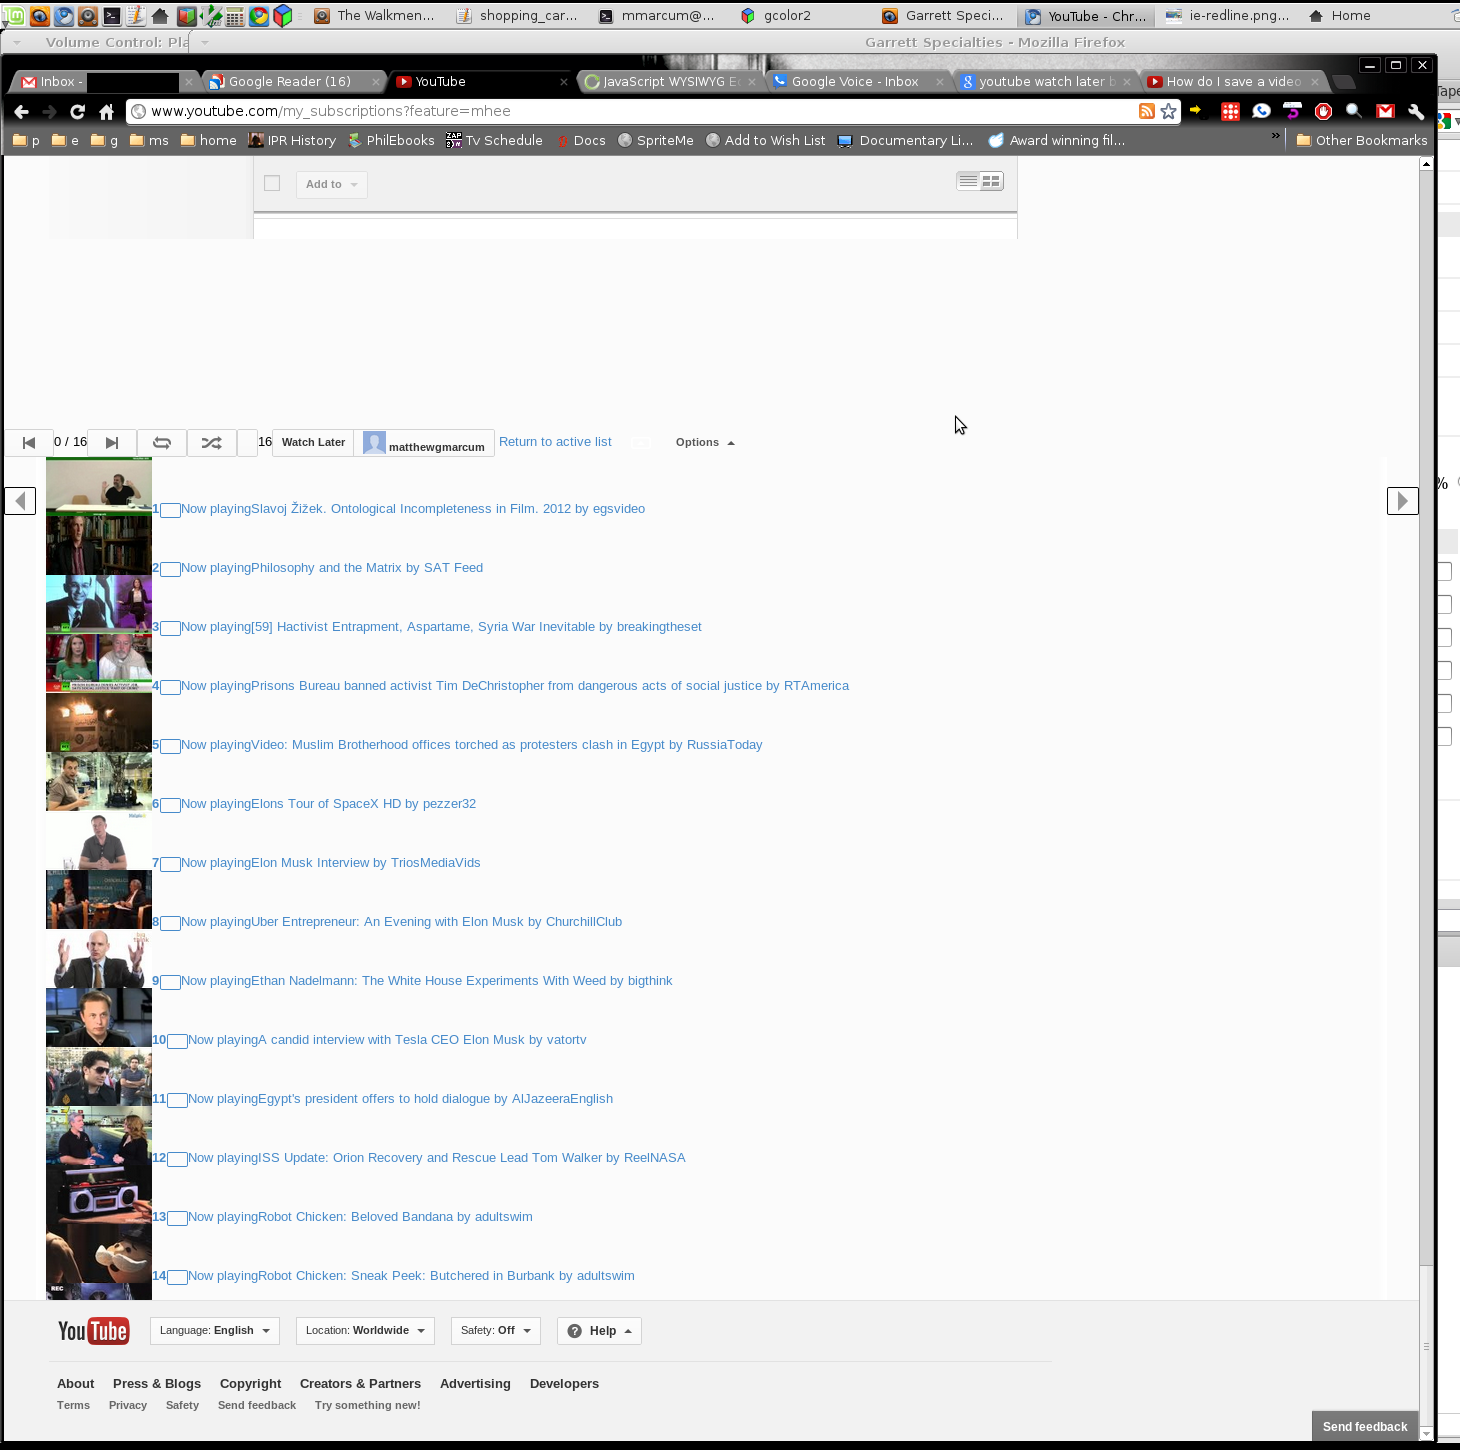 New Youtube layout not working in chrome 20 on linux mint